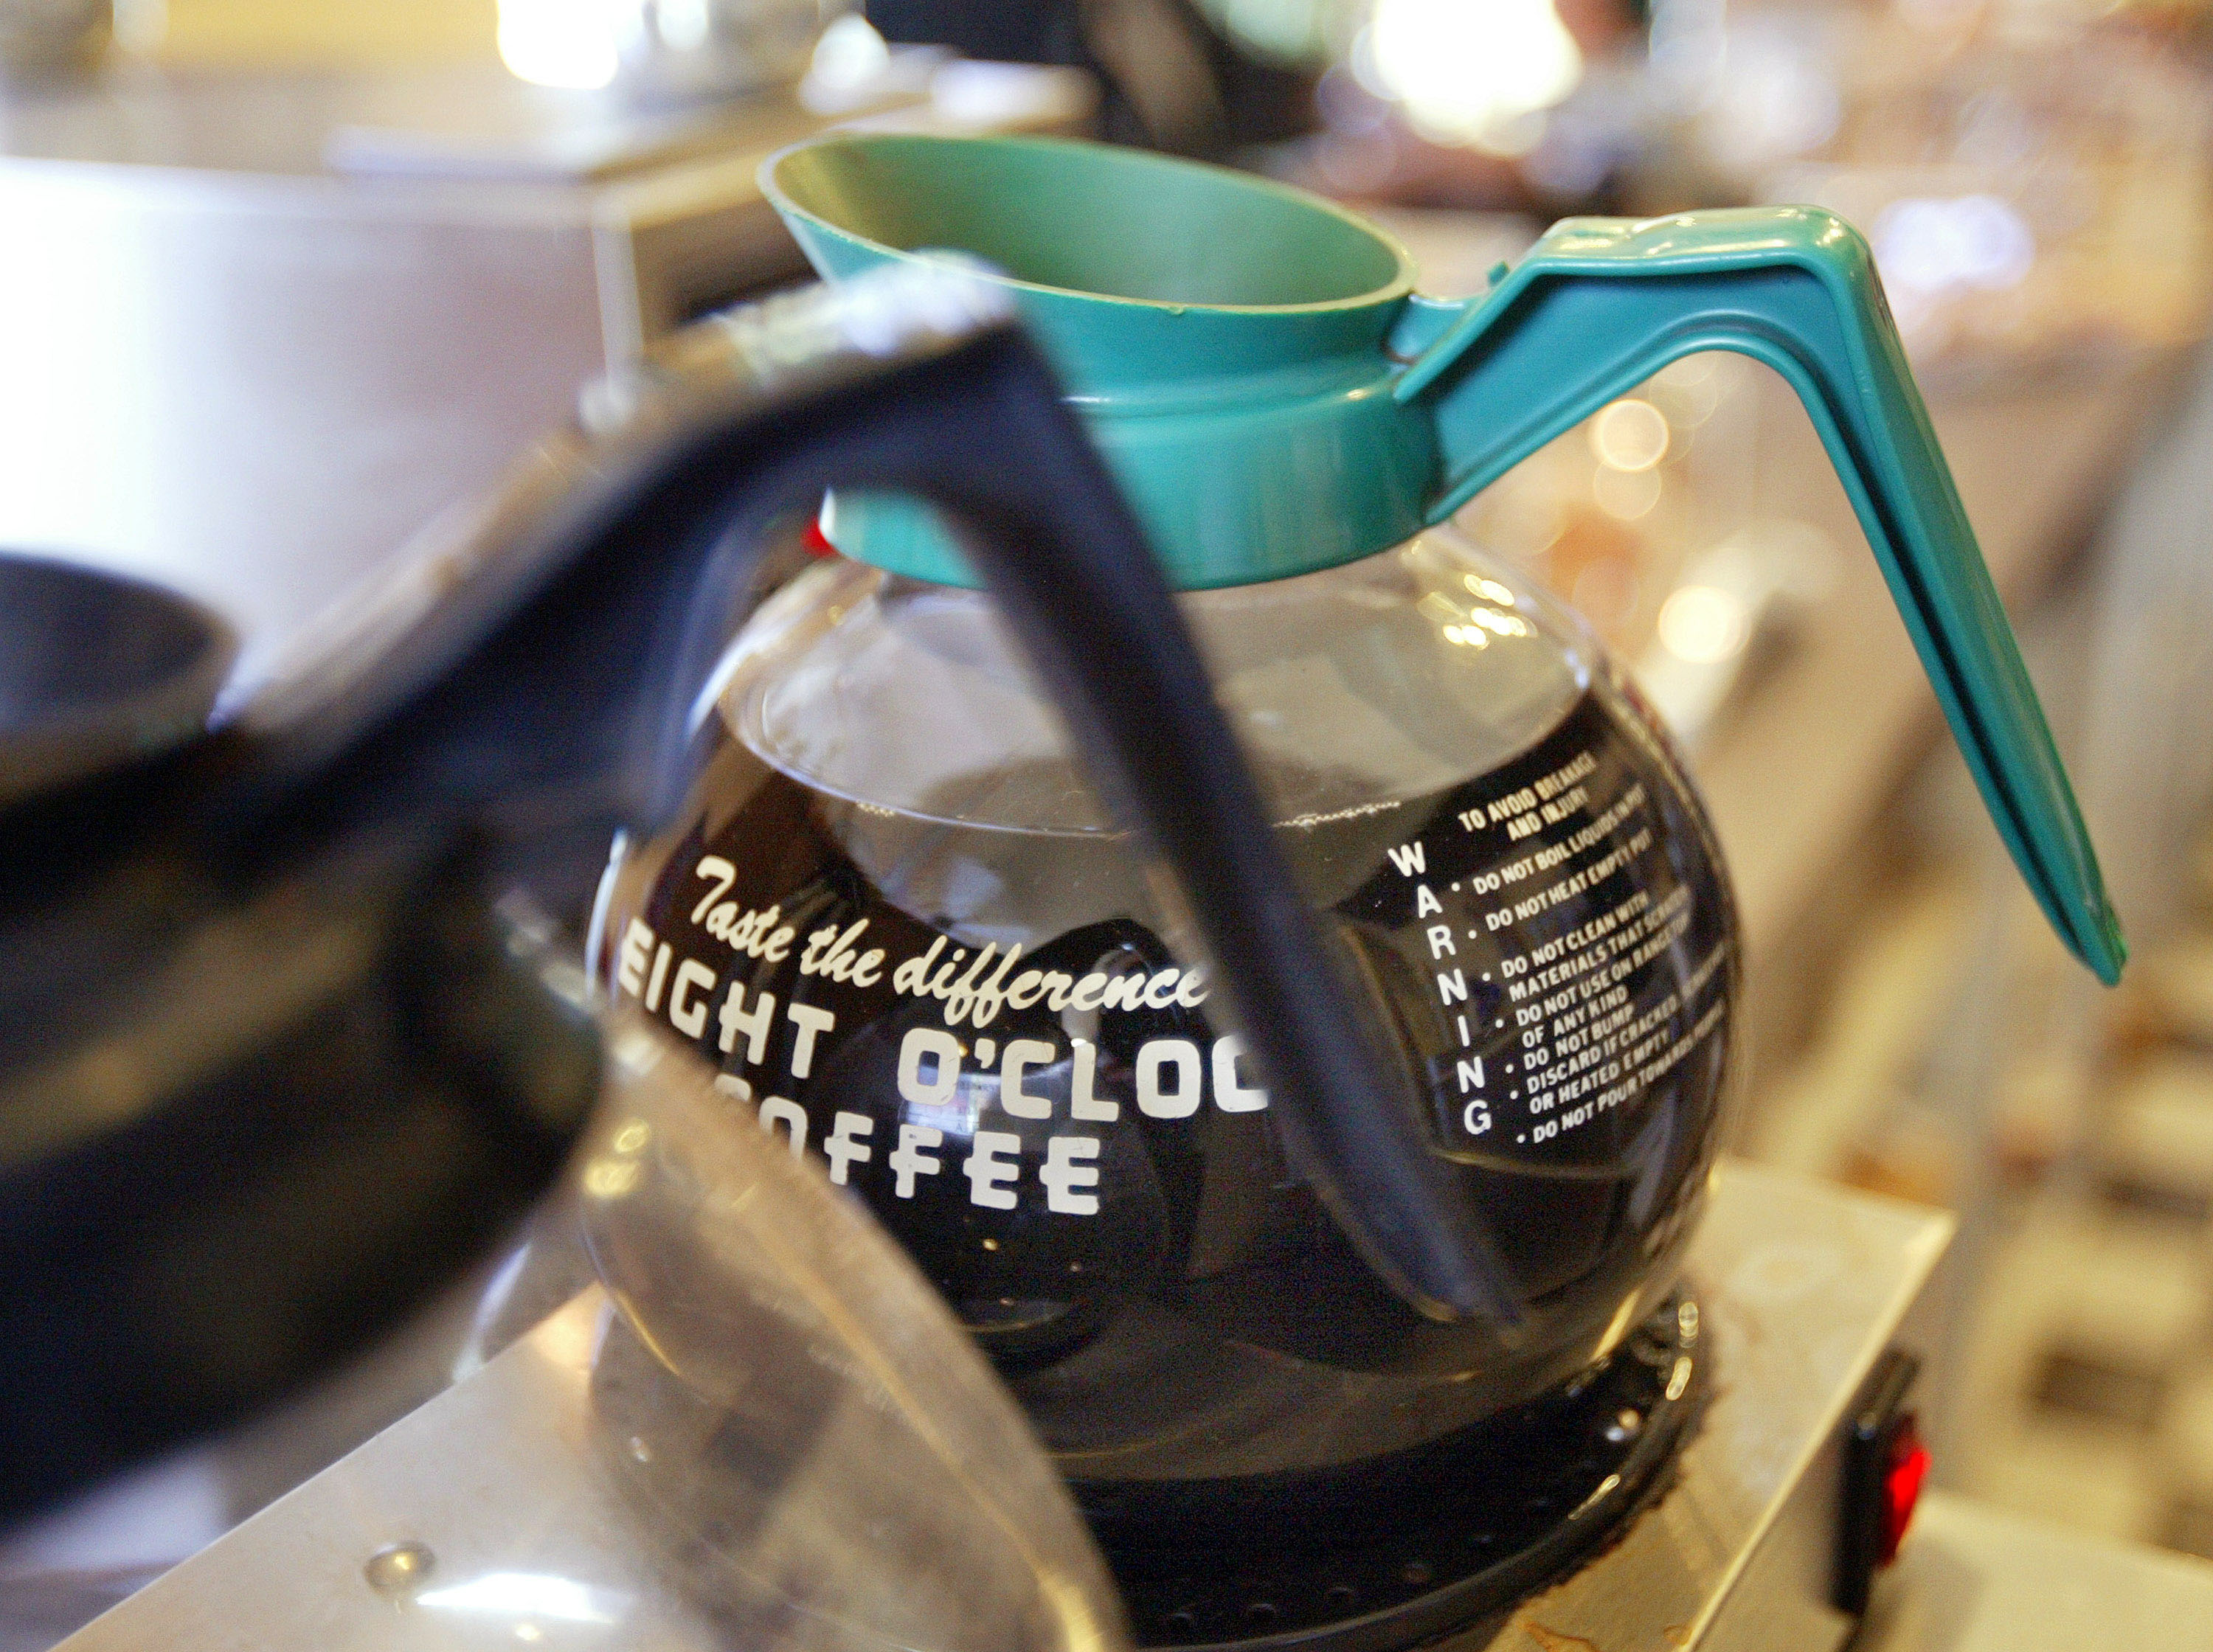 Coffee pots are seen on the counter of the Cafe Express coffee house October 1, 2004 in Evanston, Illinois.